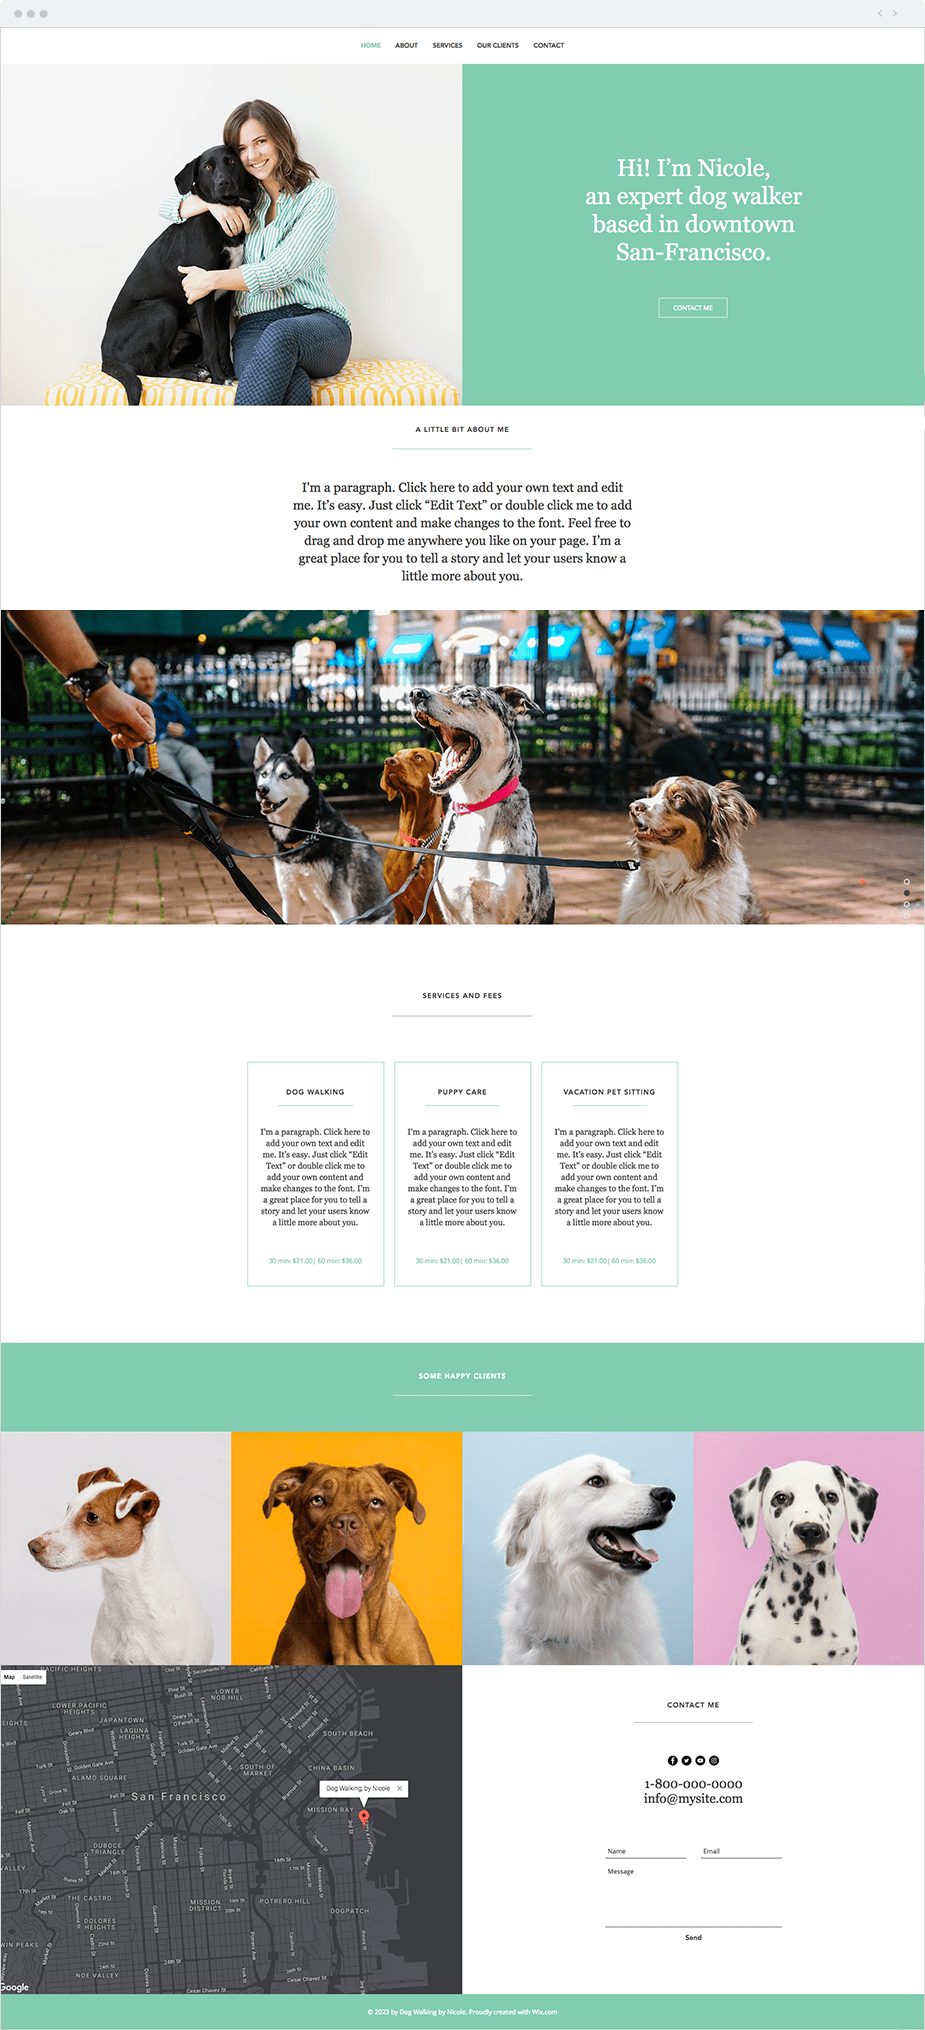 Wix Templates: Dog Walker